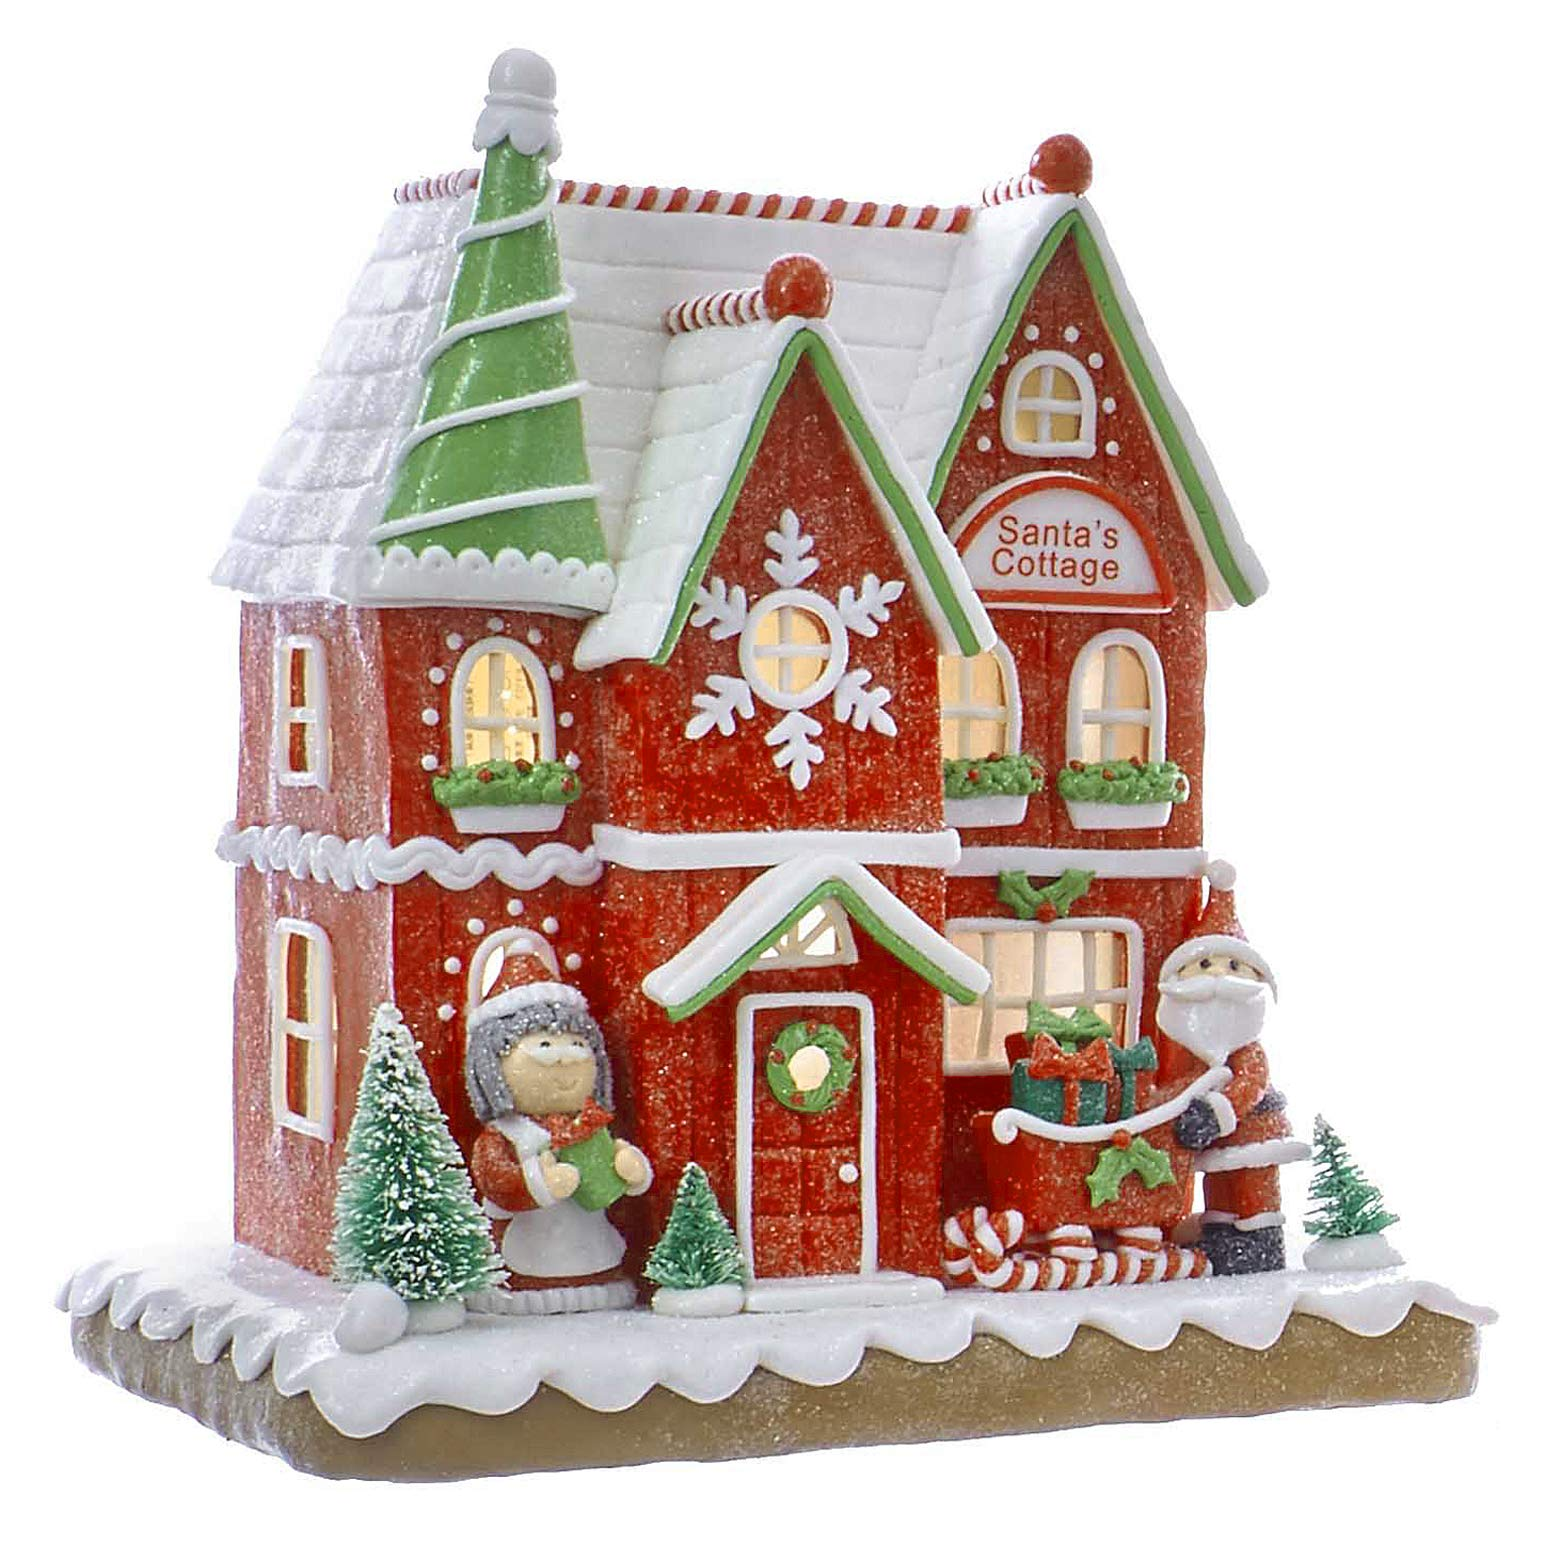 Christmas Decorations - LED Lighted Santa's Cottage Gingerbread House